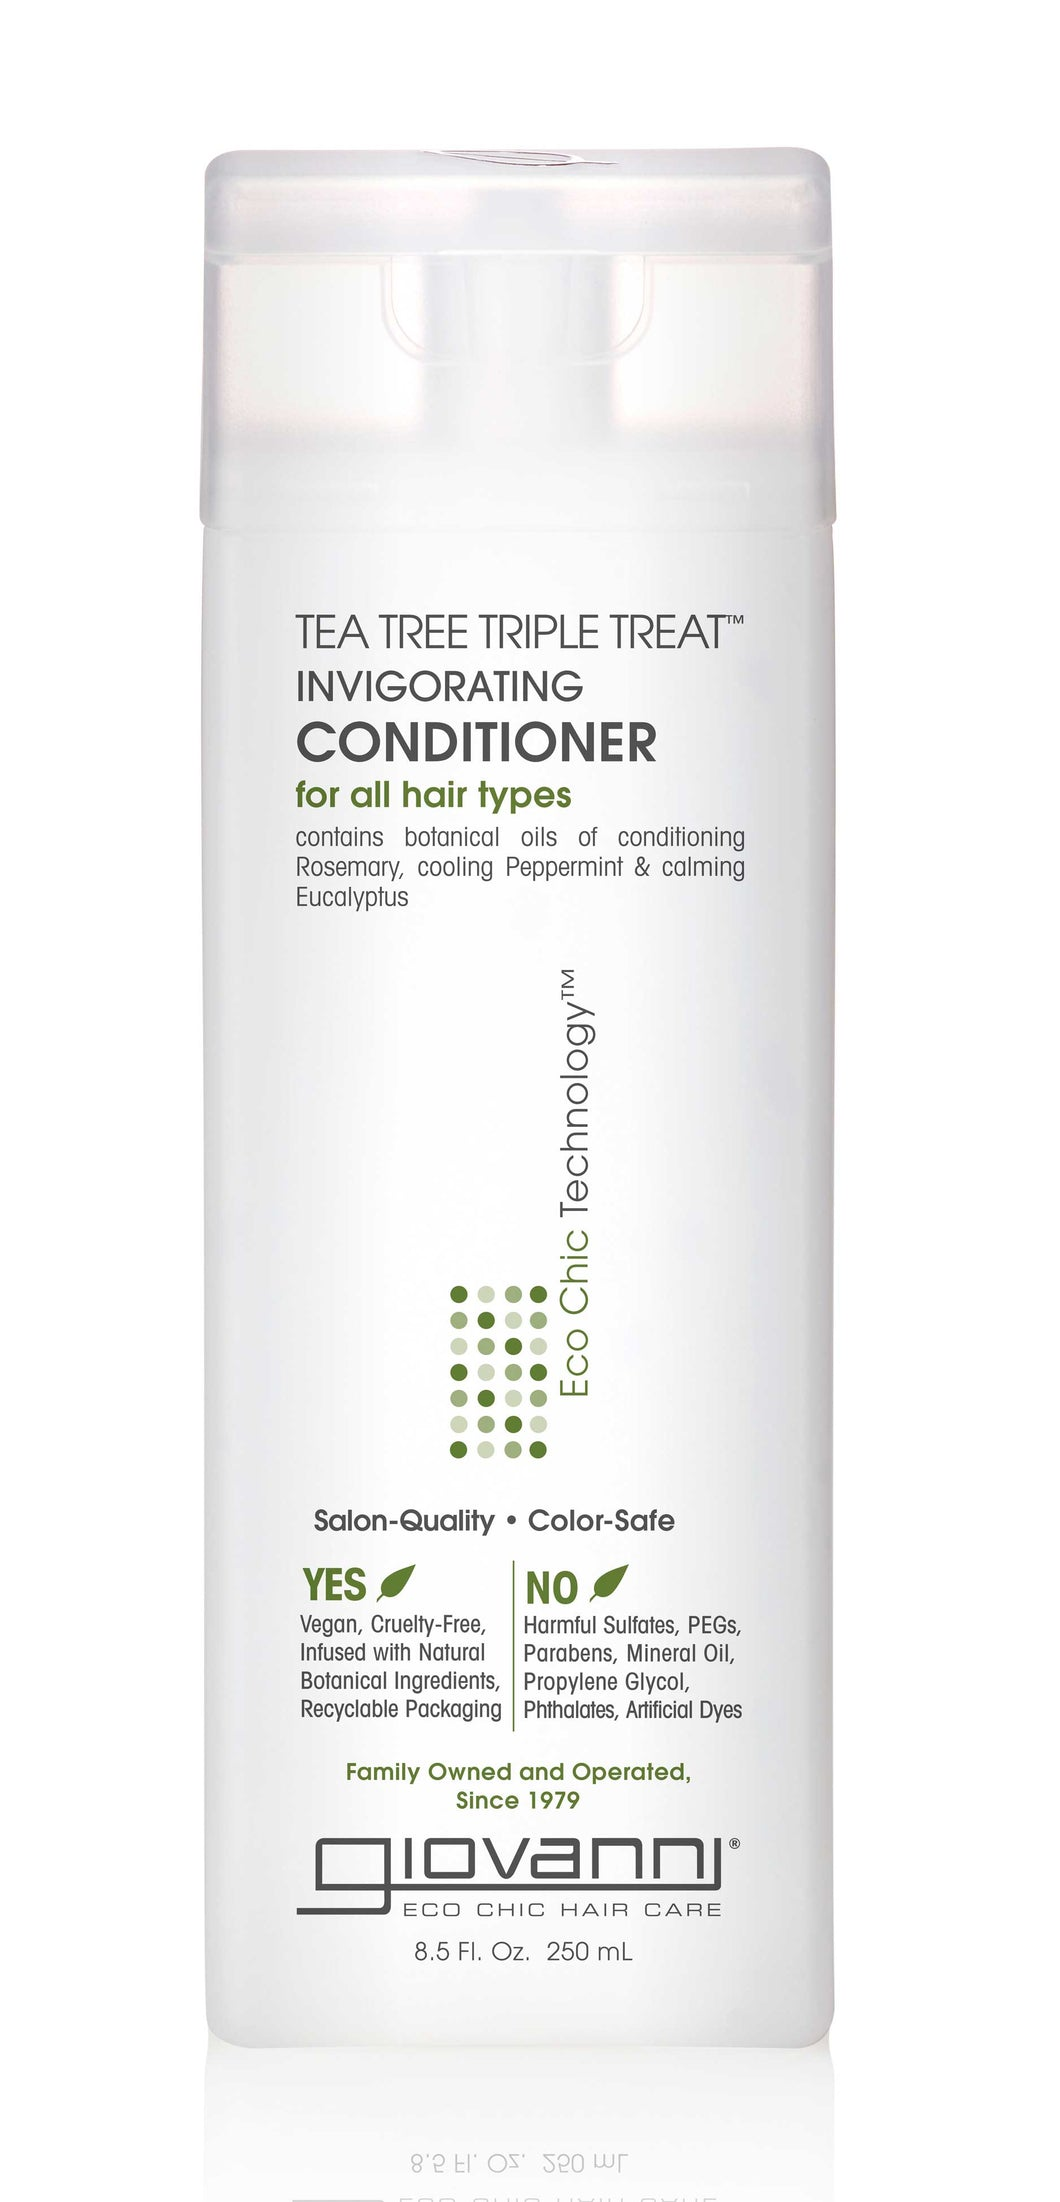 Tea Tree Triple Treat Conditioner